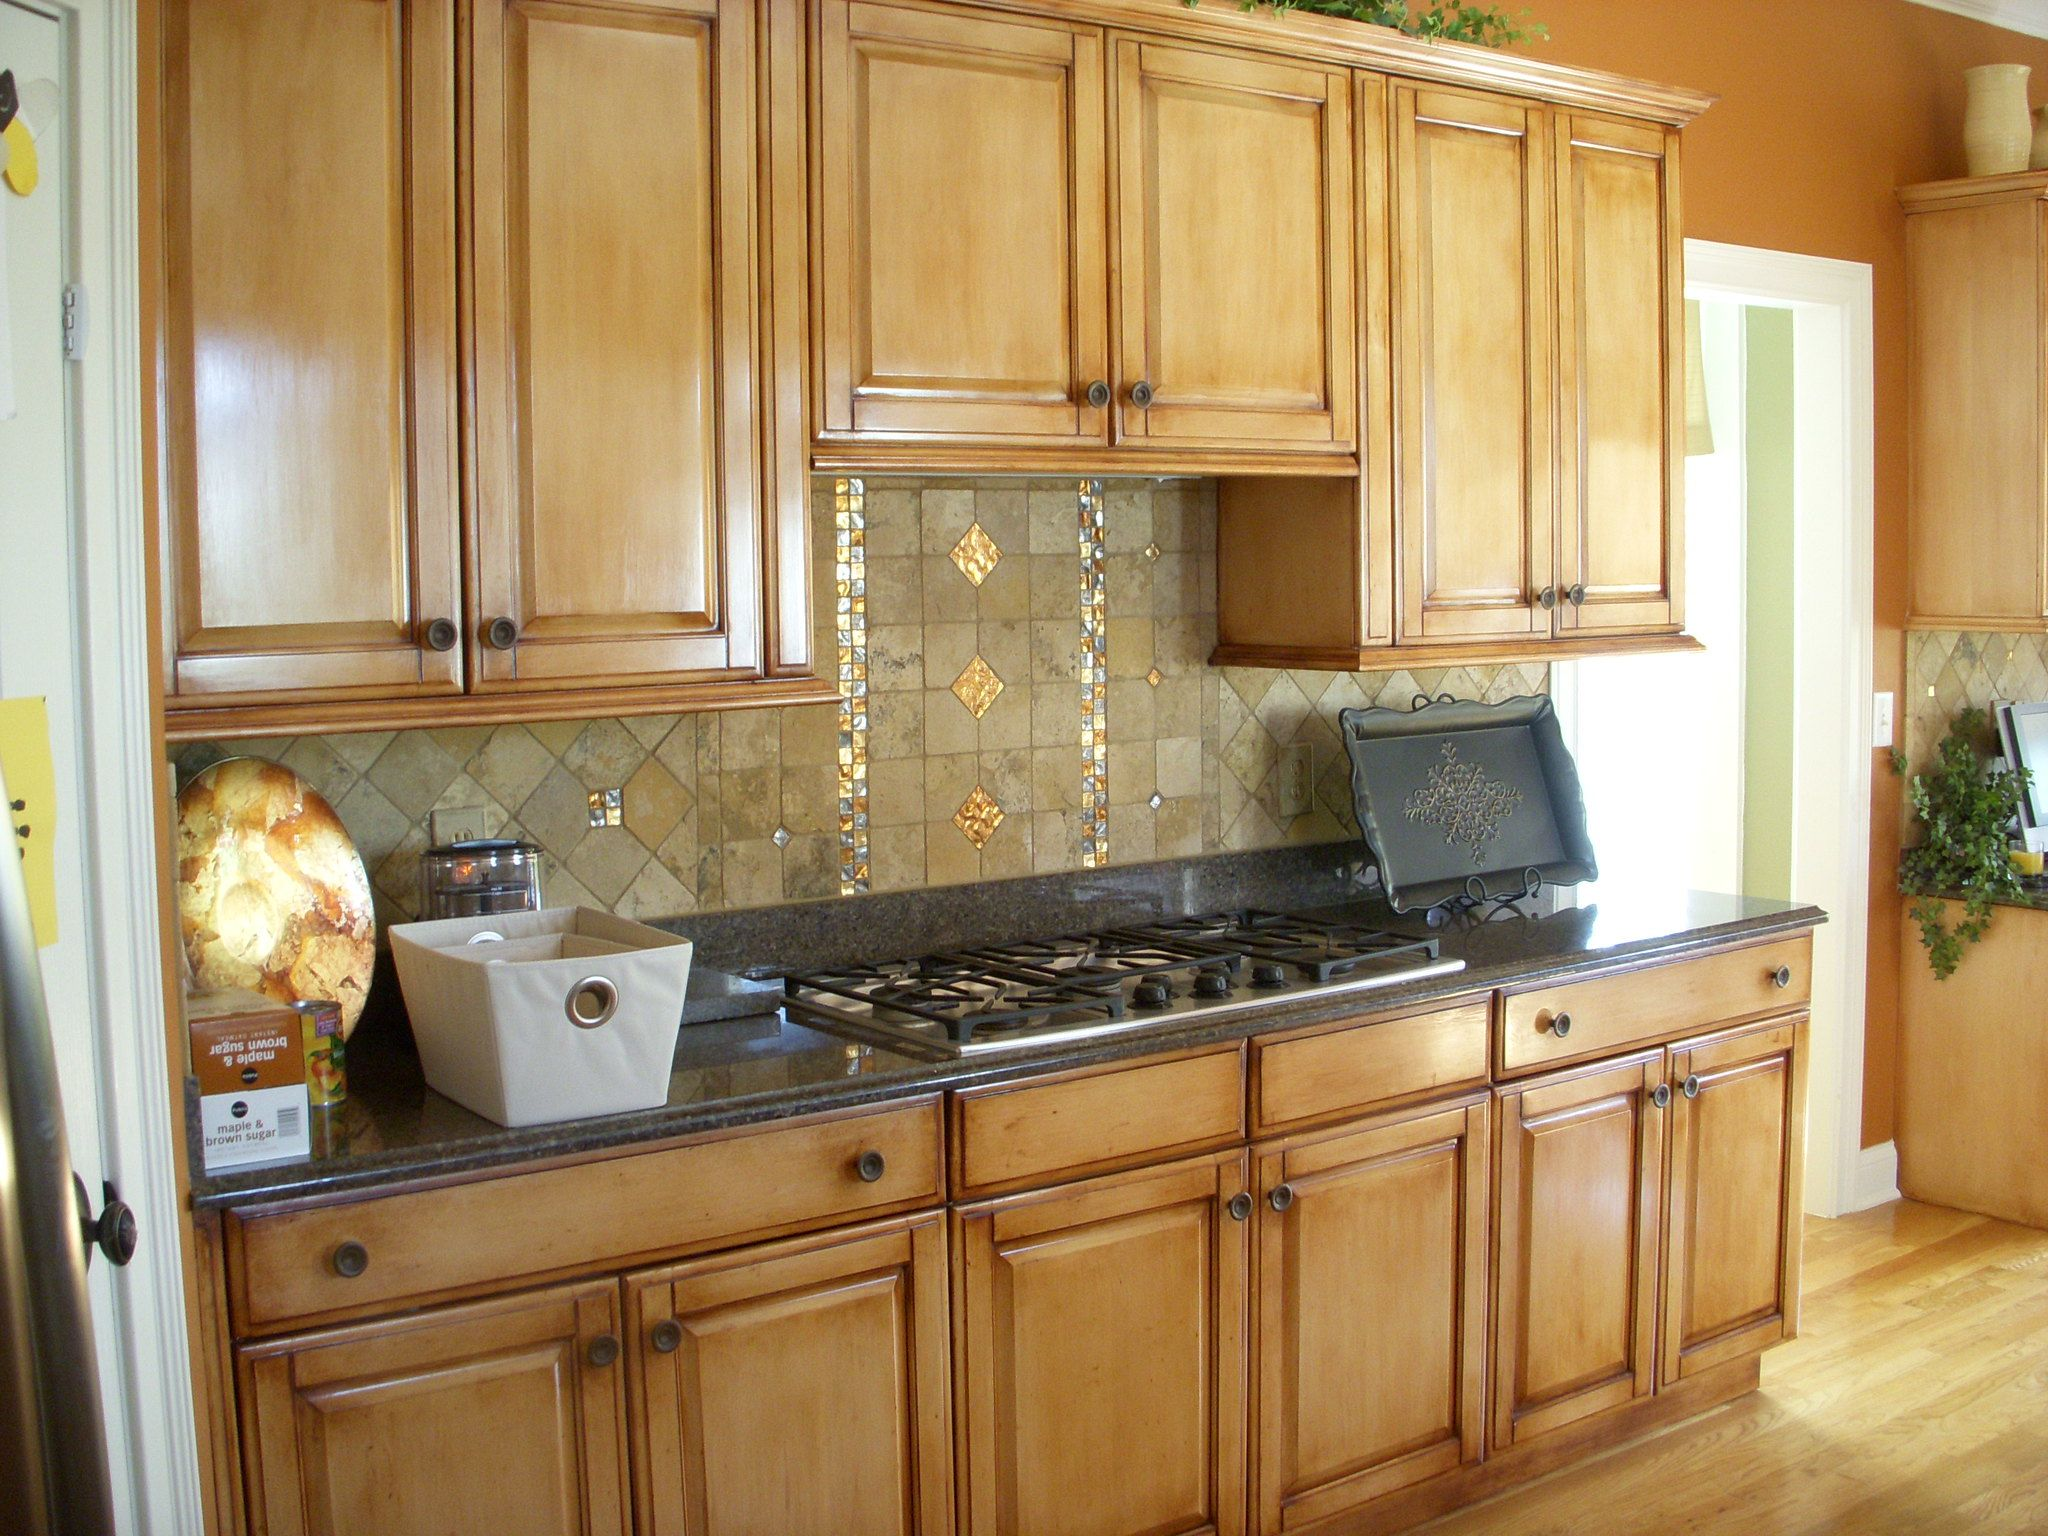 Glazed Cabinets In 2020 Honey Oak Cabinets Oak Kitchen Oak Cabinets